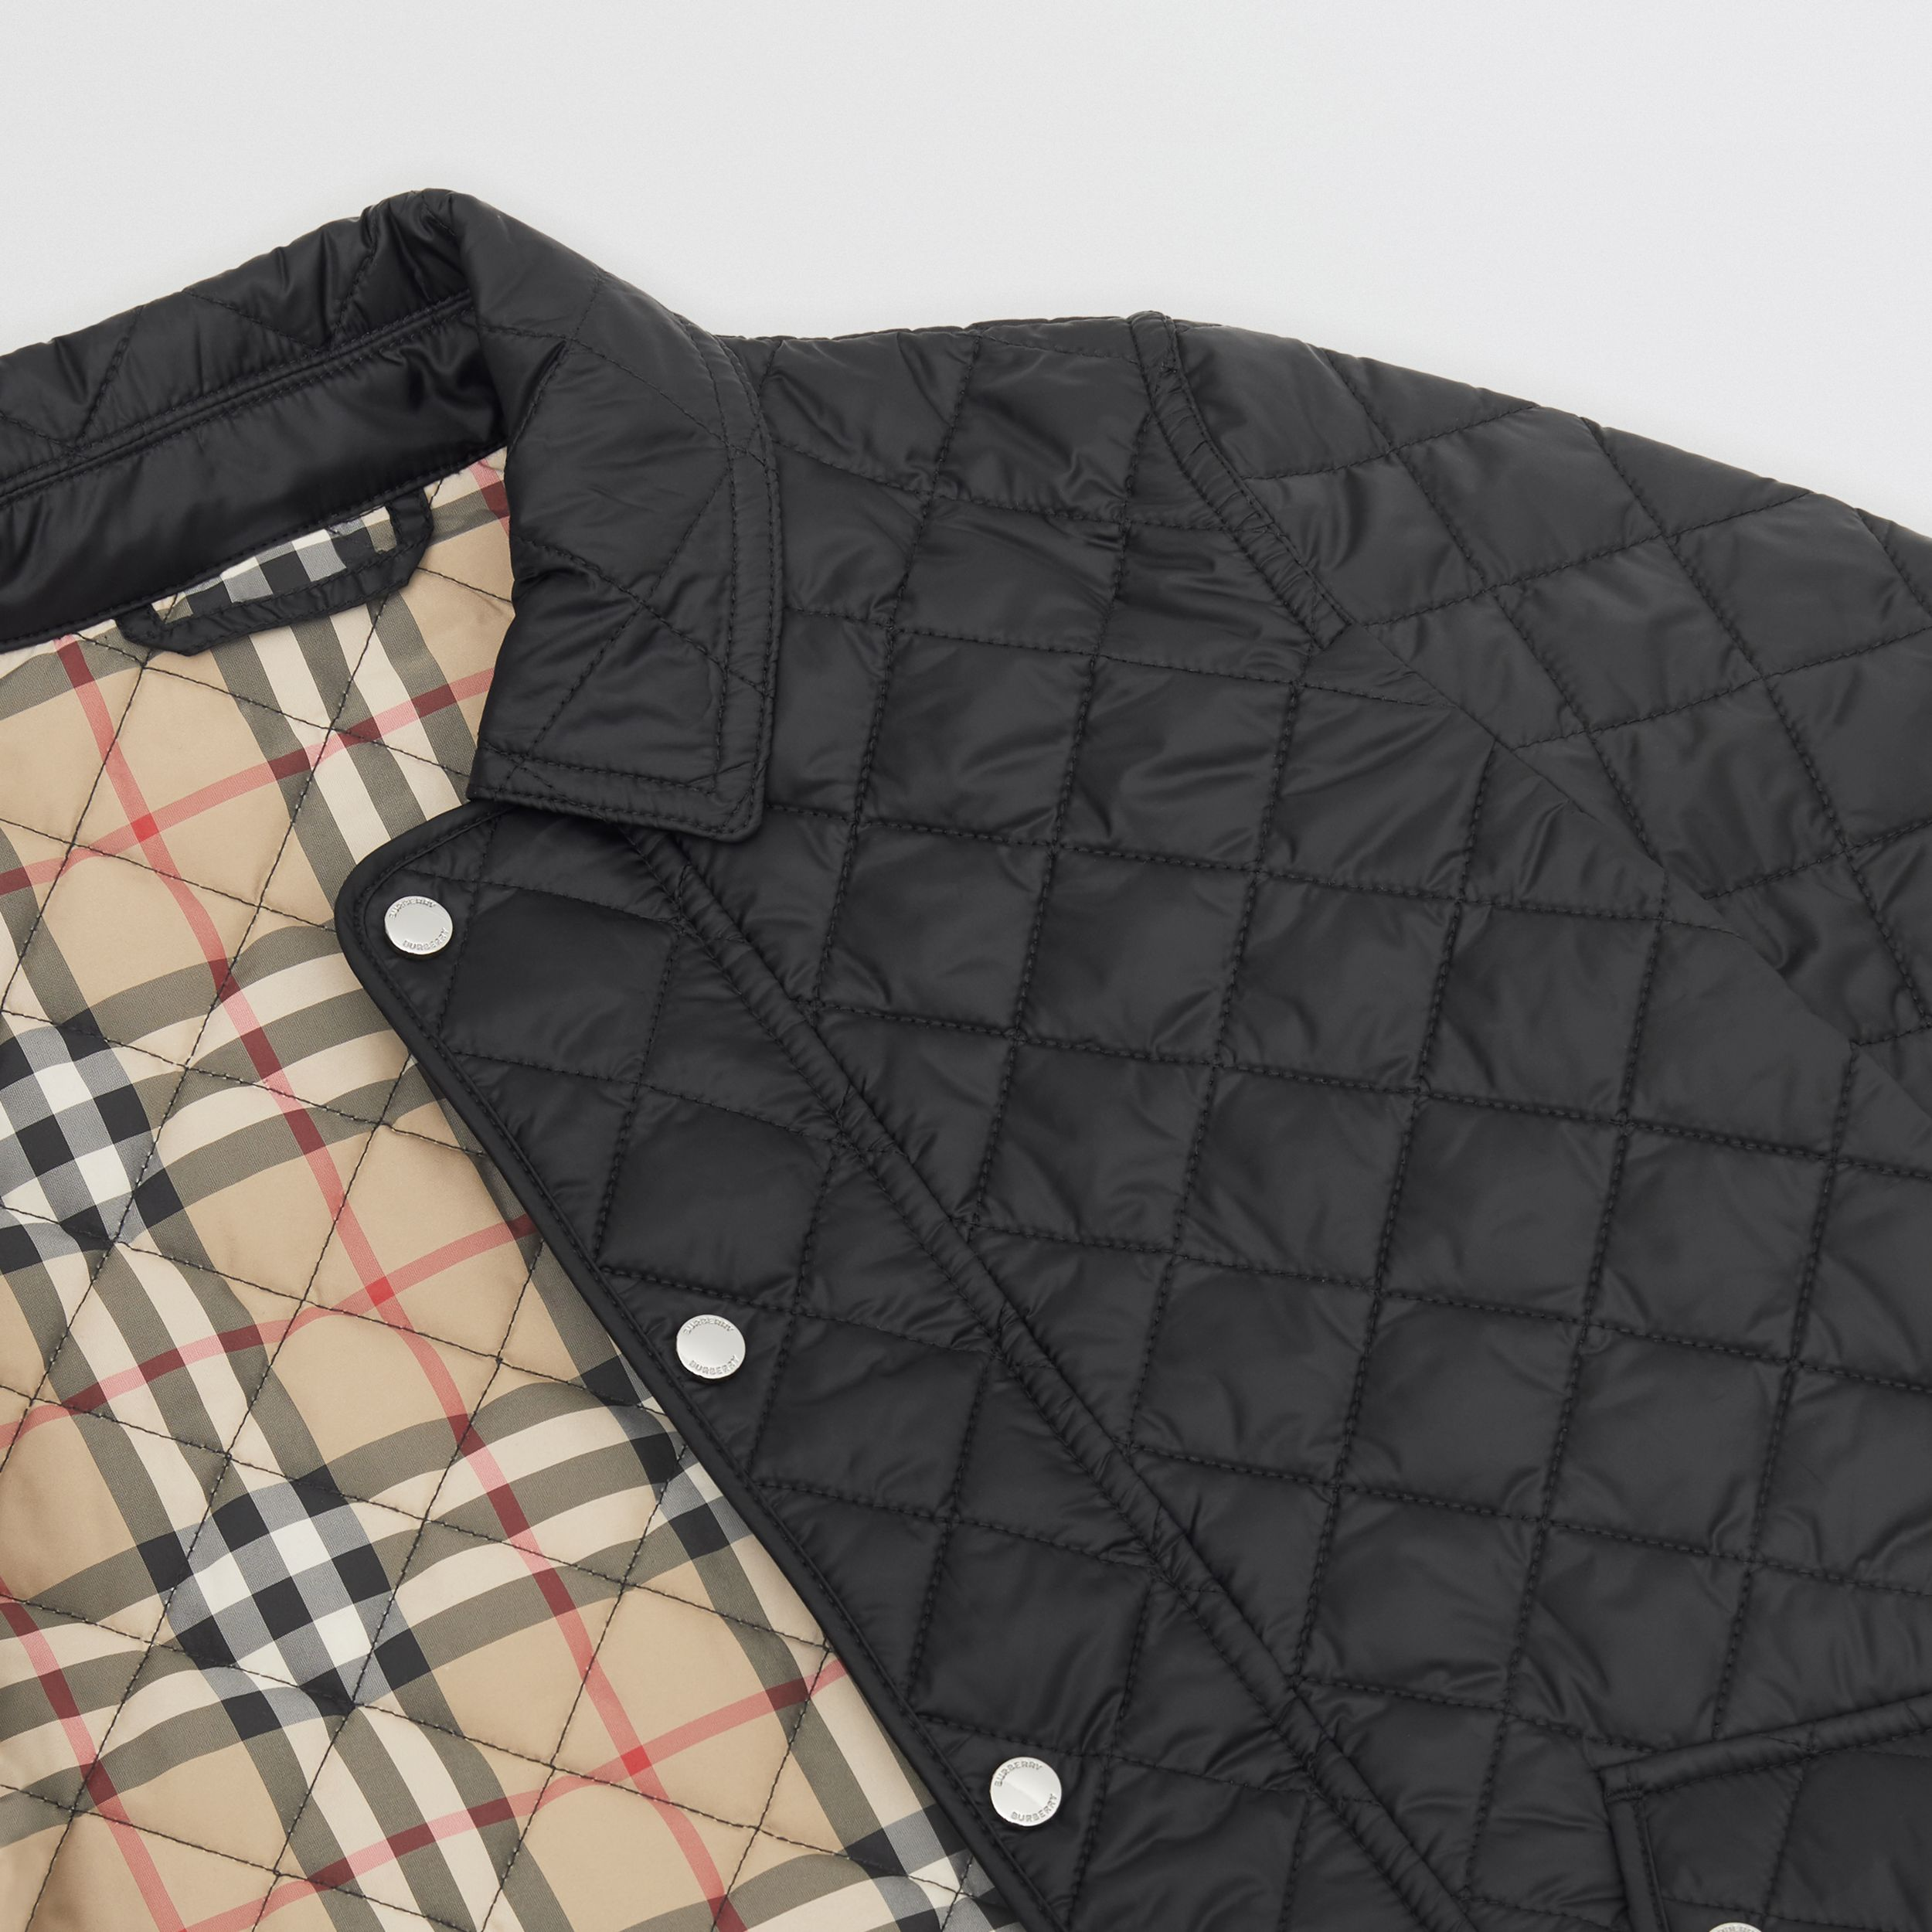 Lightweight Diamond Quilted Jacket in Black | Burberry - 2